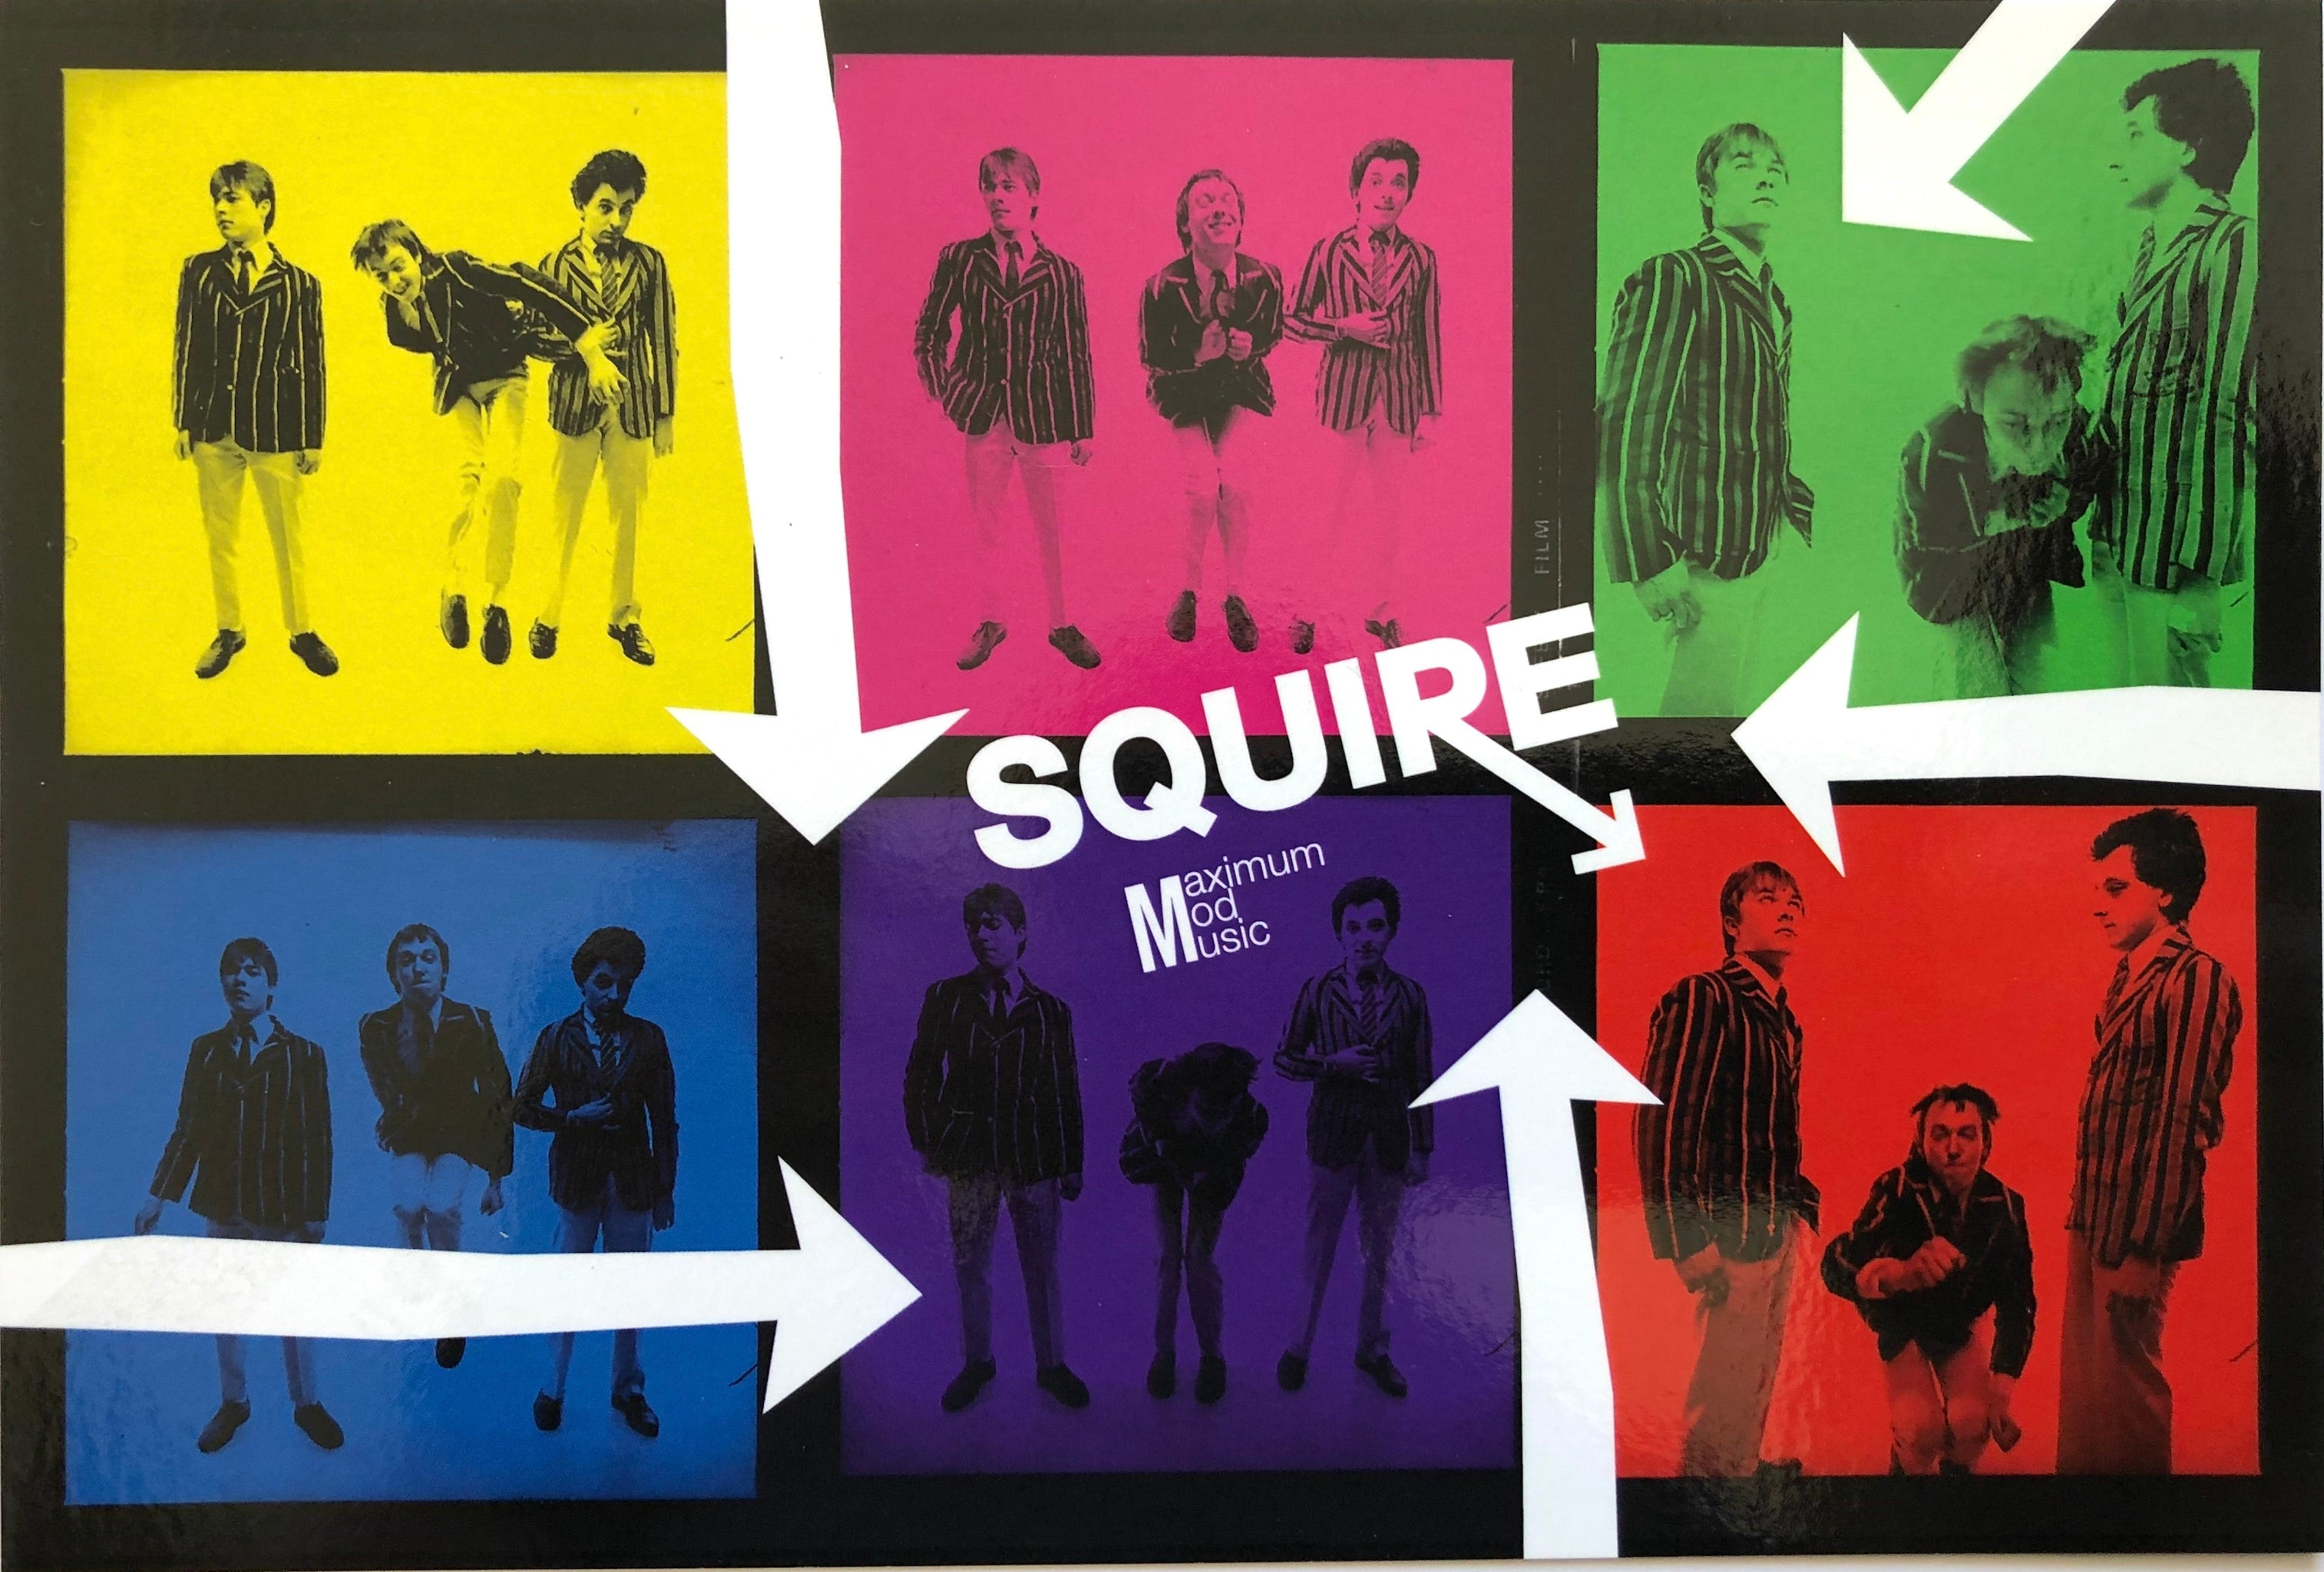 Squire - The Official Squire Fan Club Album - with special insert